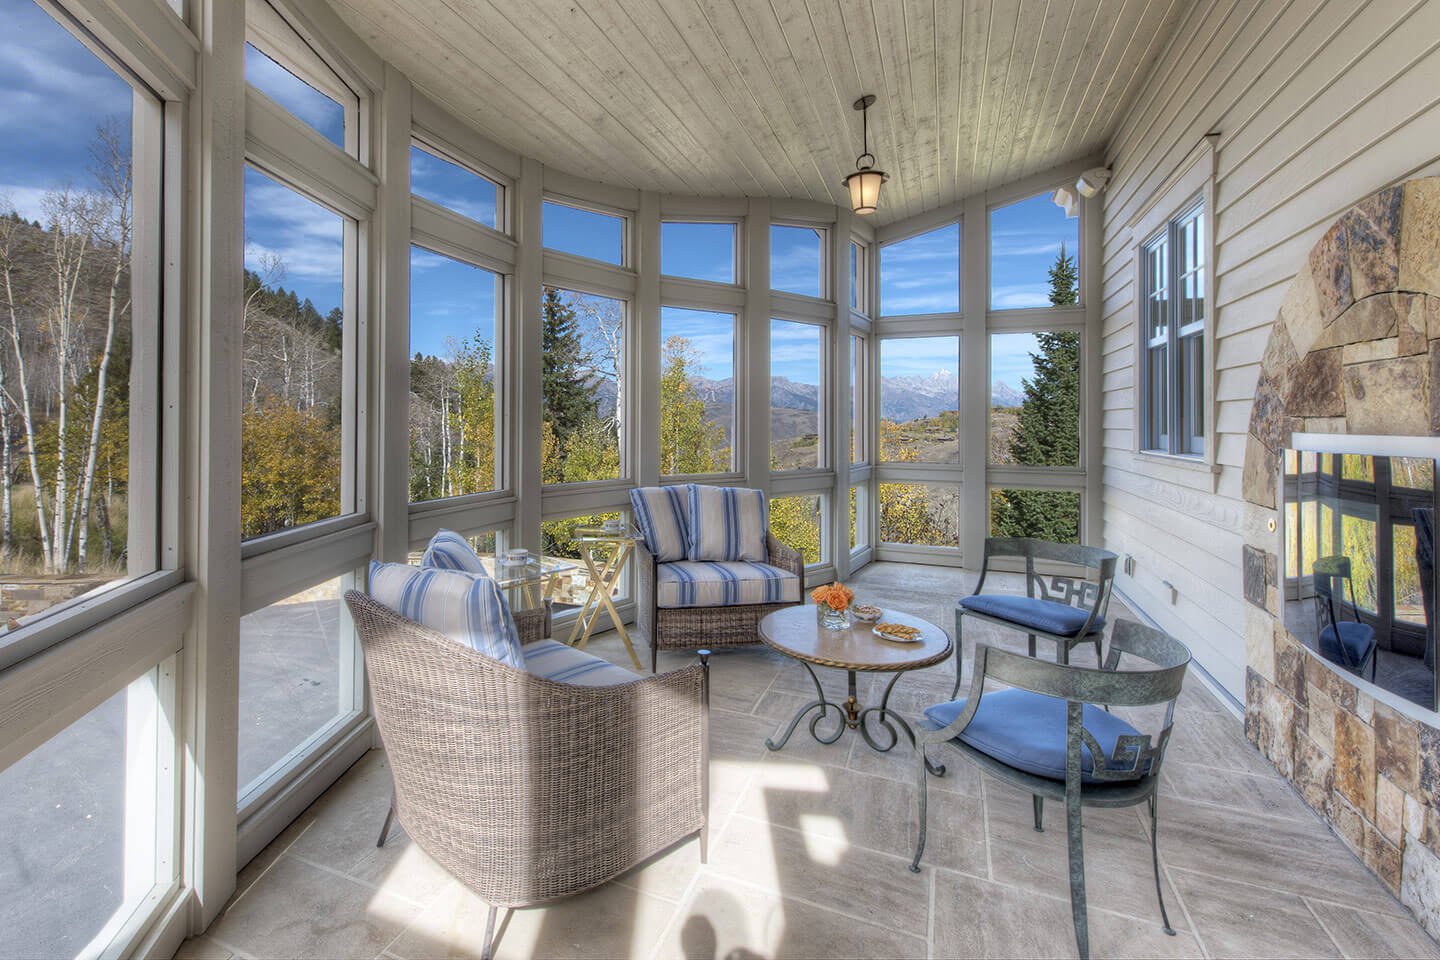 Covered patio (or sunroom)